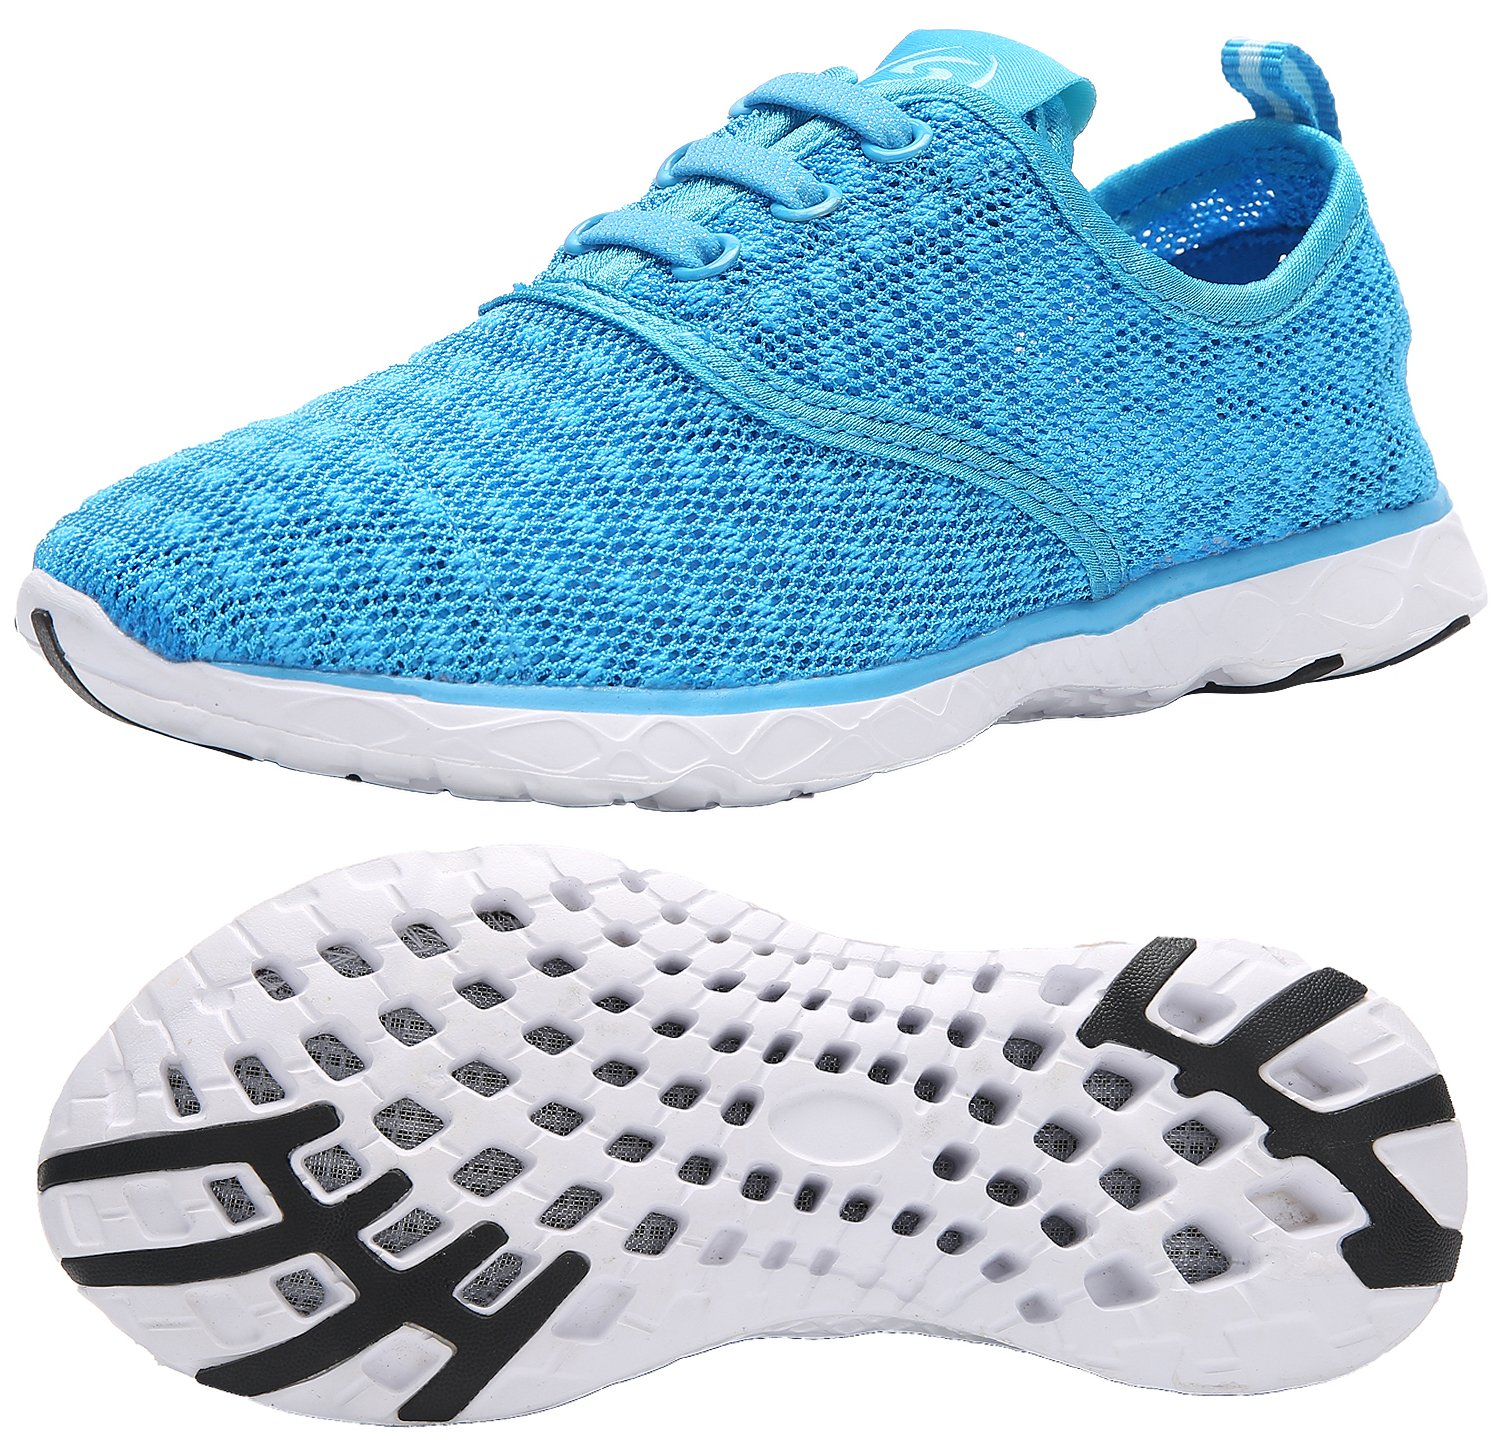 KARIDO Kid's Slip-on Quick Drying Aqua Water Shoes Athletic Sneakers